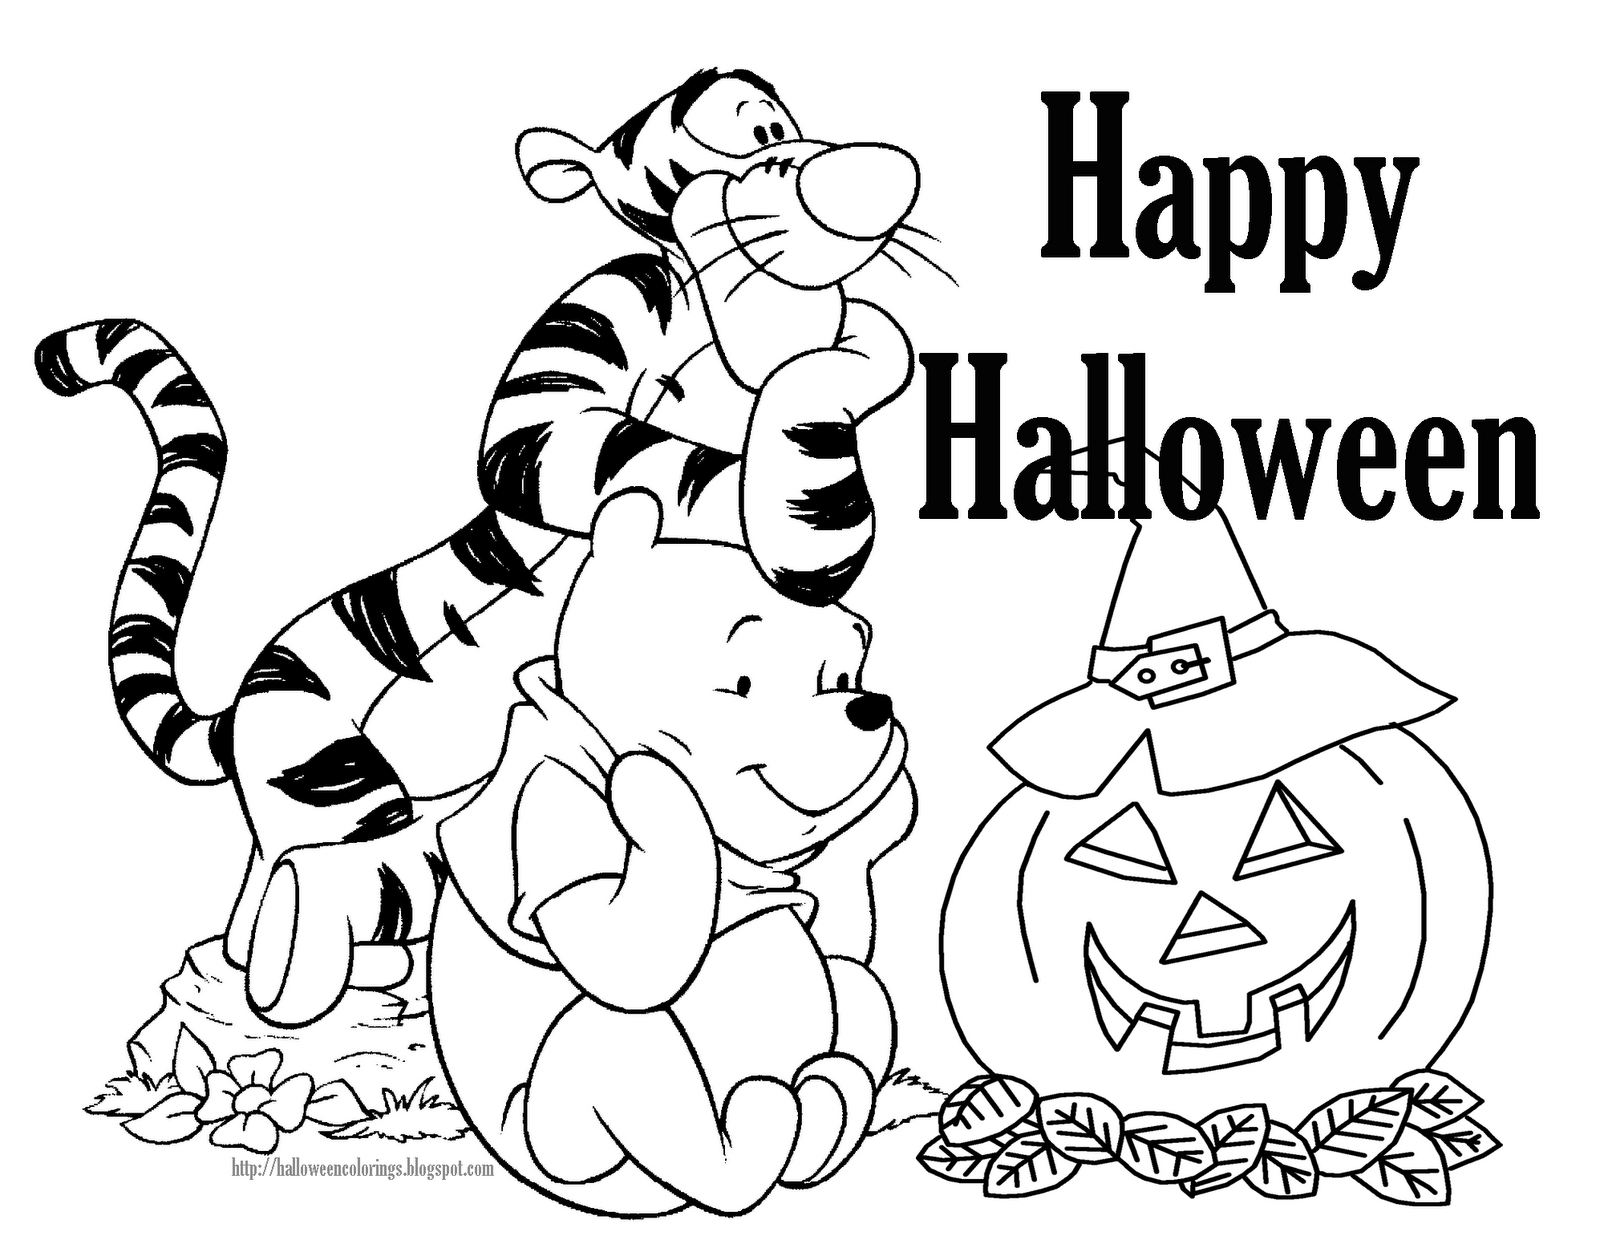 Disney halloween coloring book pages kids coloring pages for Free disney coloring pages to print